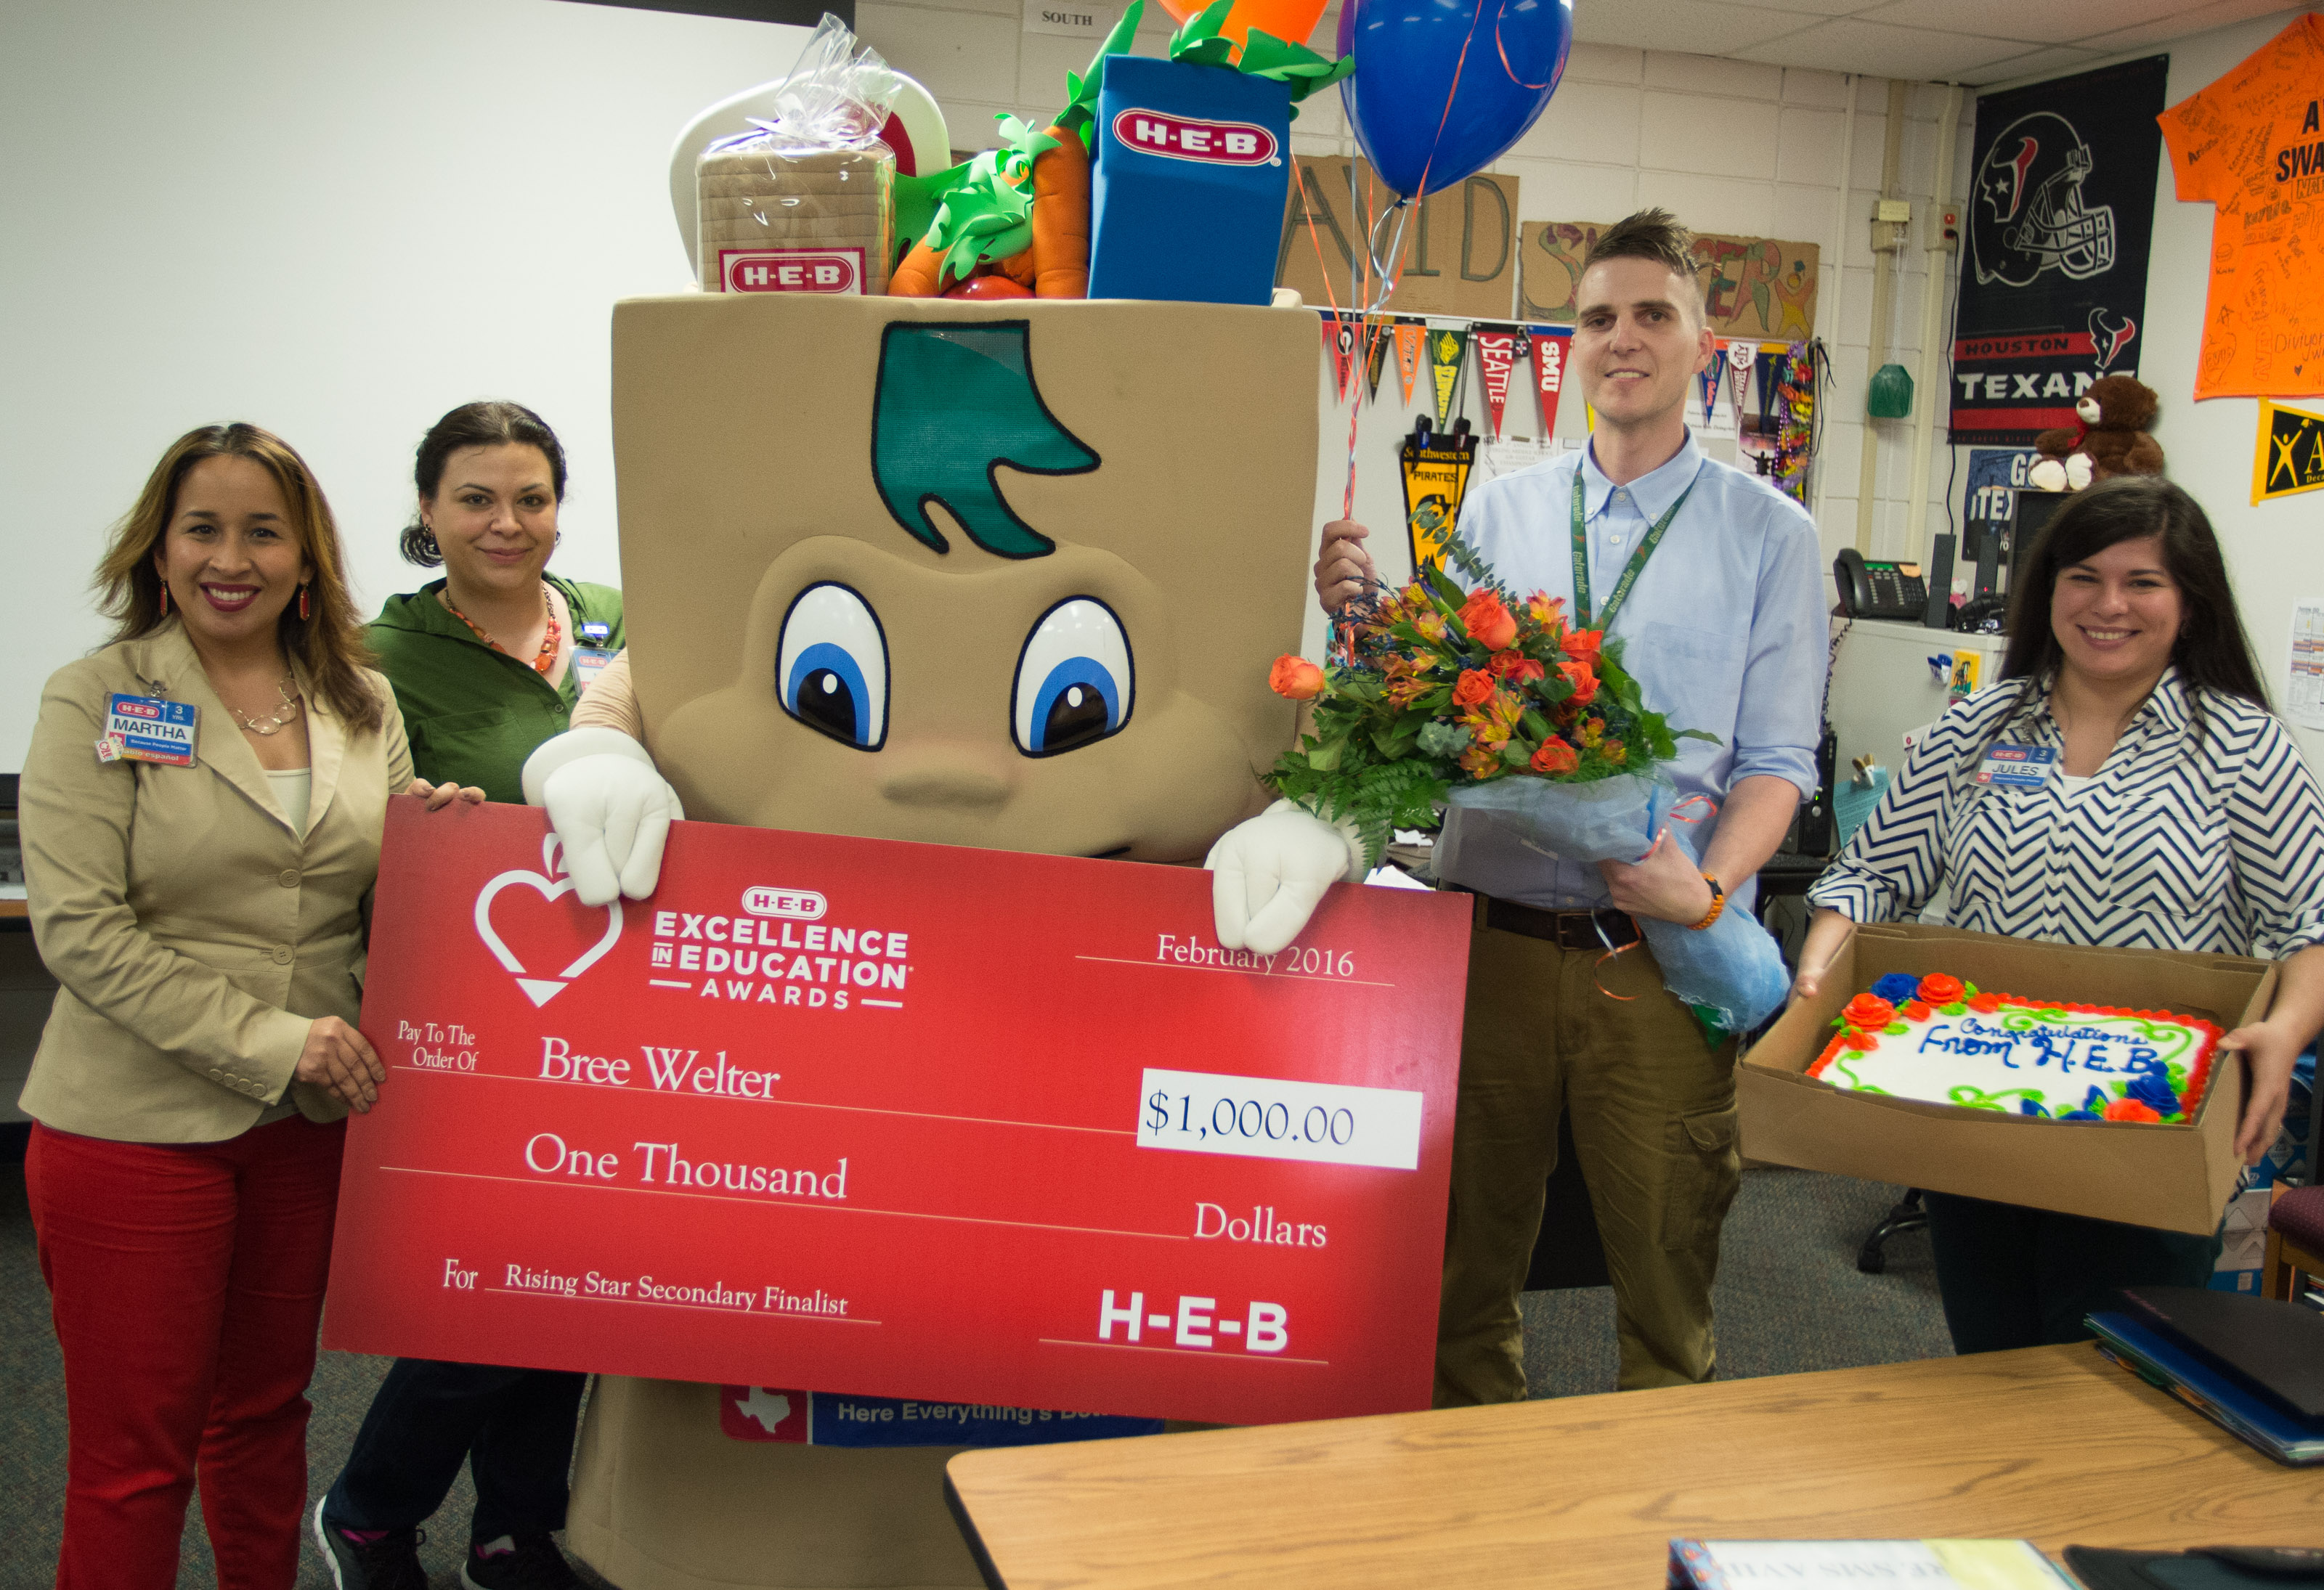 Houston-area Educators Named Finalists for 2016 H-E-B Excellence in Education Awards | Houston Style Magazine | Urban Weekly Newspaper Publication Website